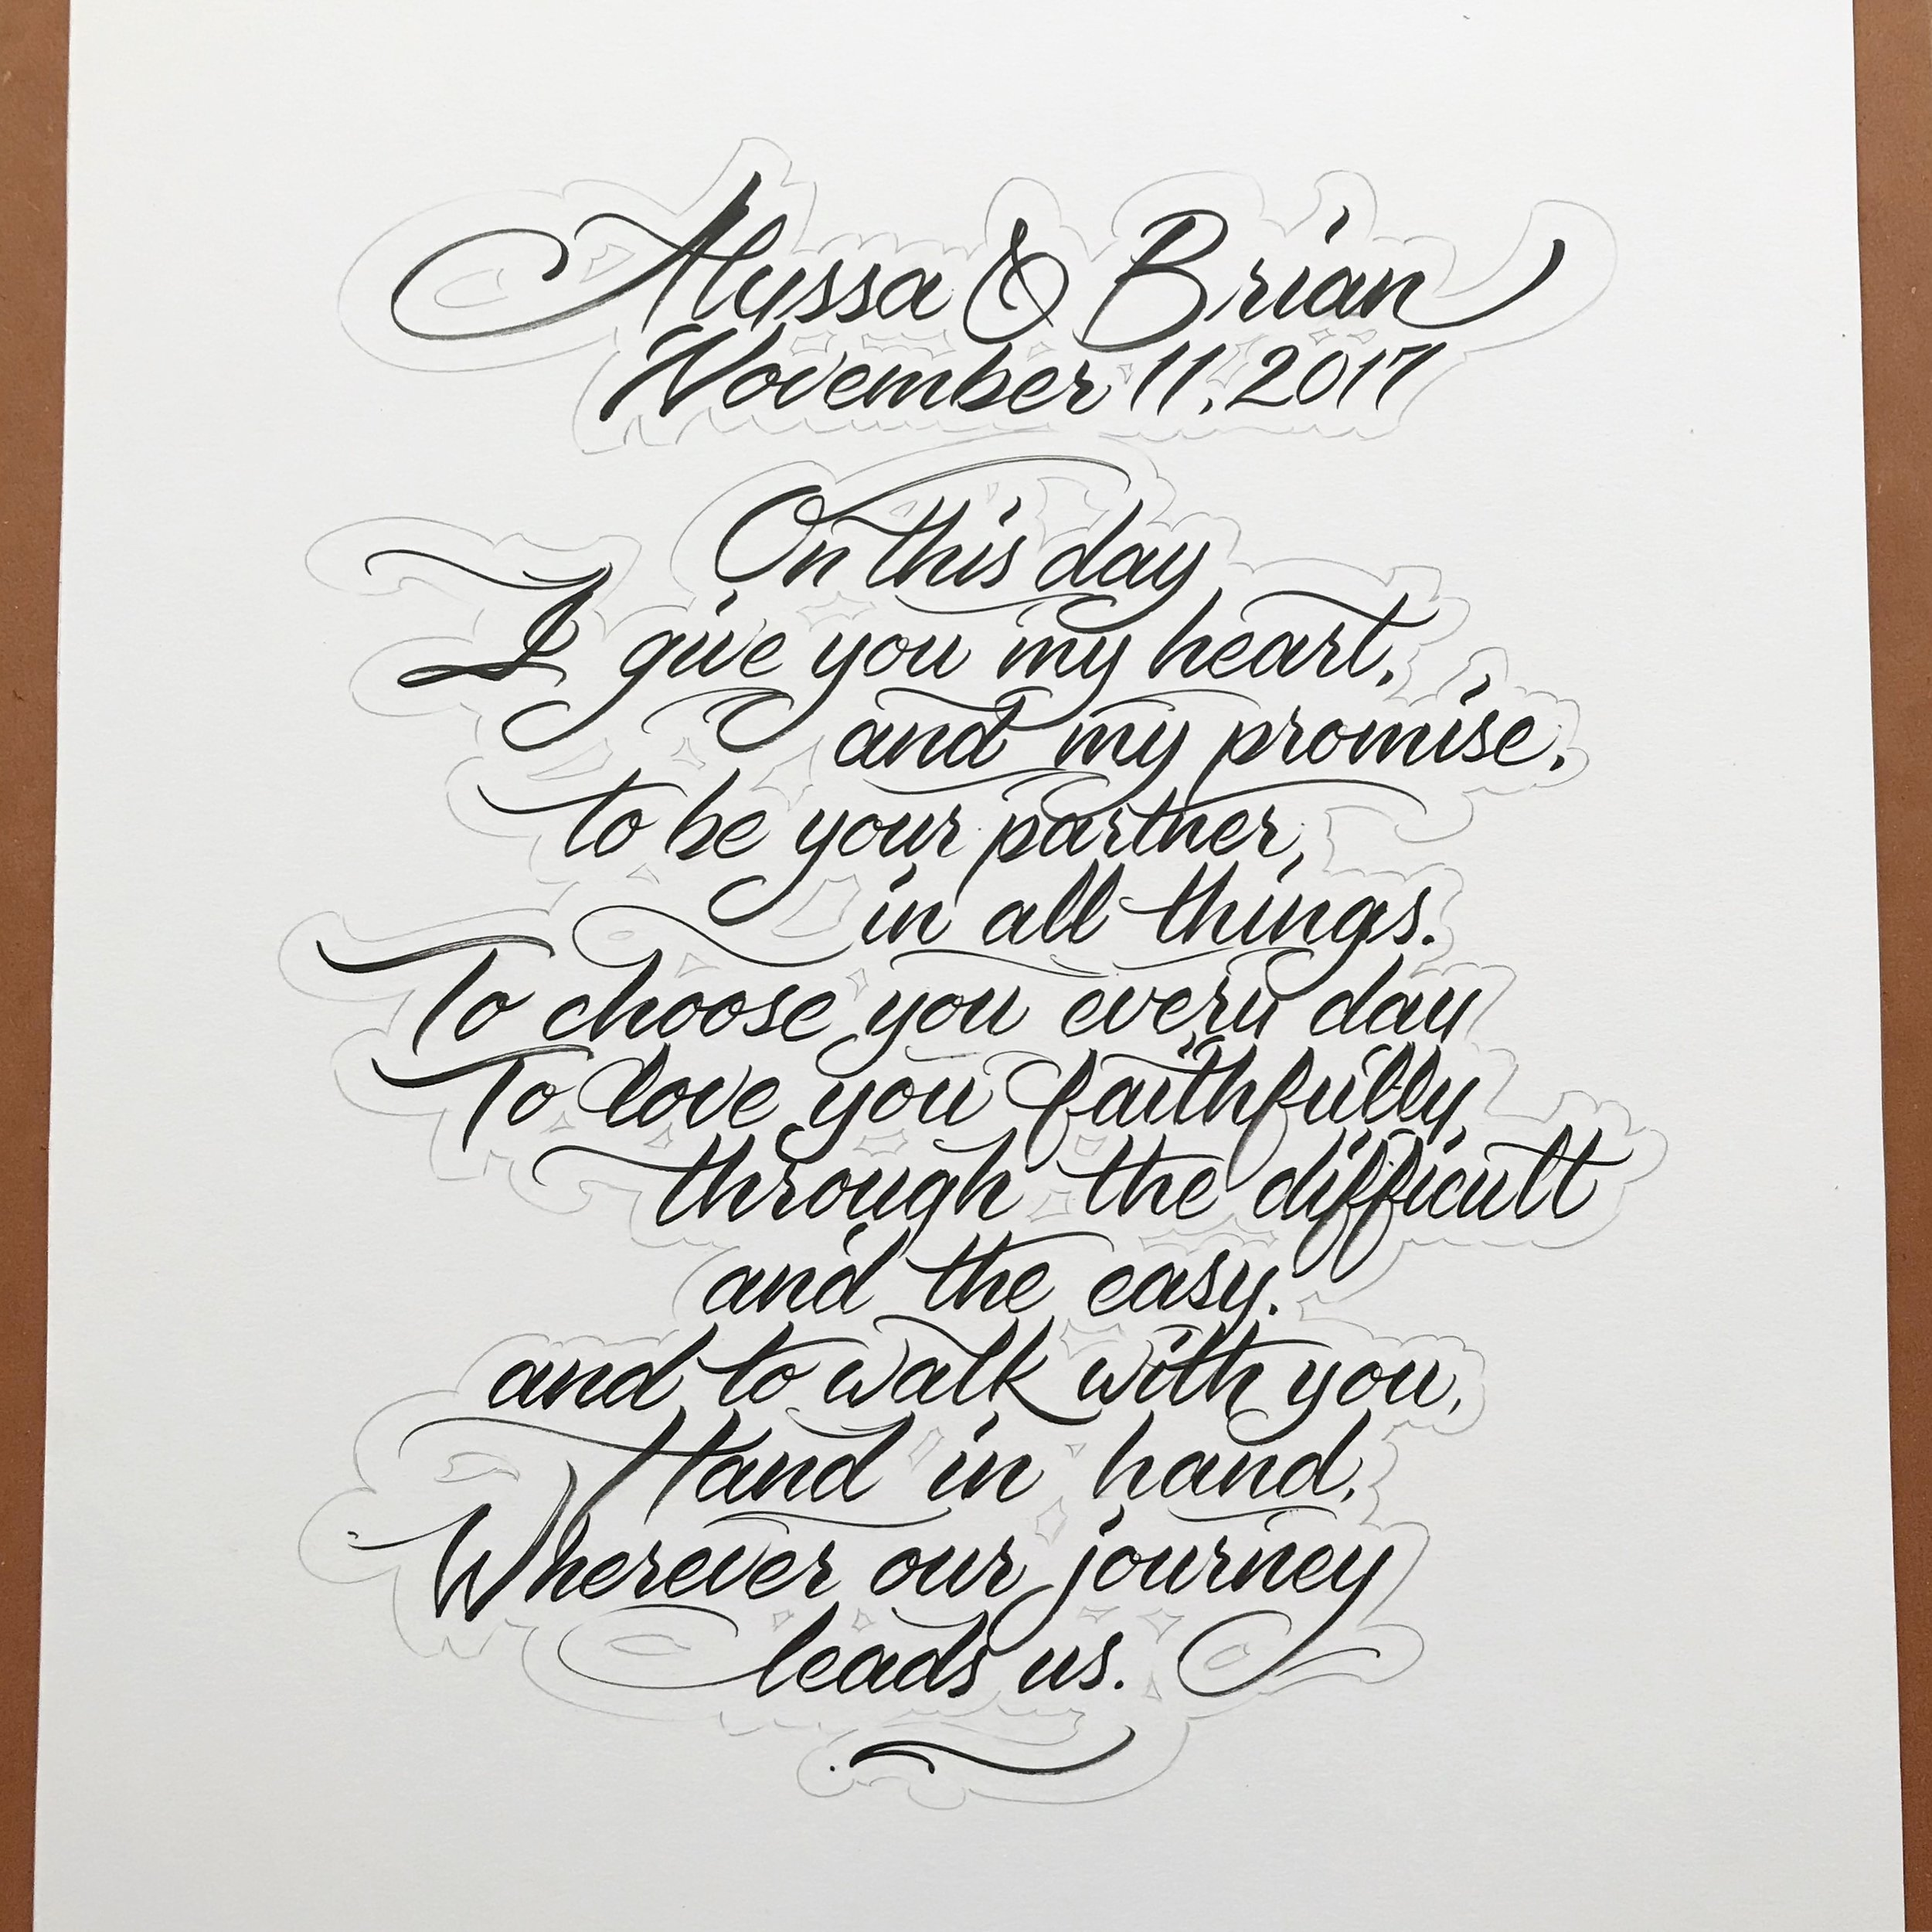 graphic design Justin Turkus Philadelphia tattoo artist wedding vows calligraphy script.jpg